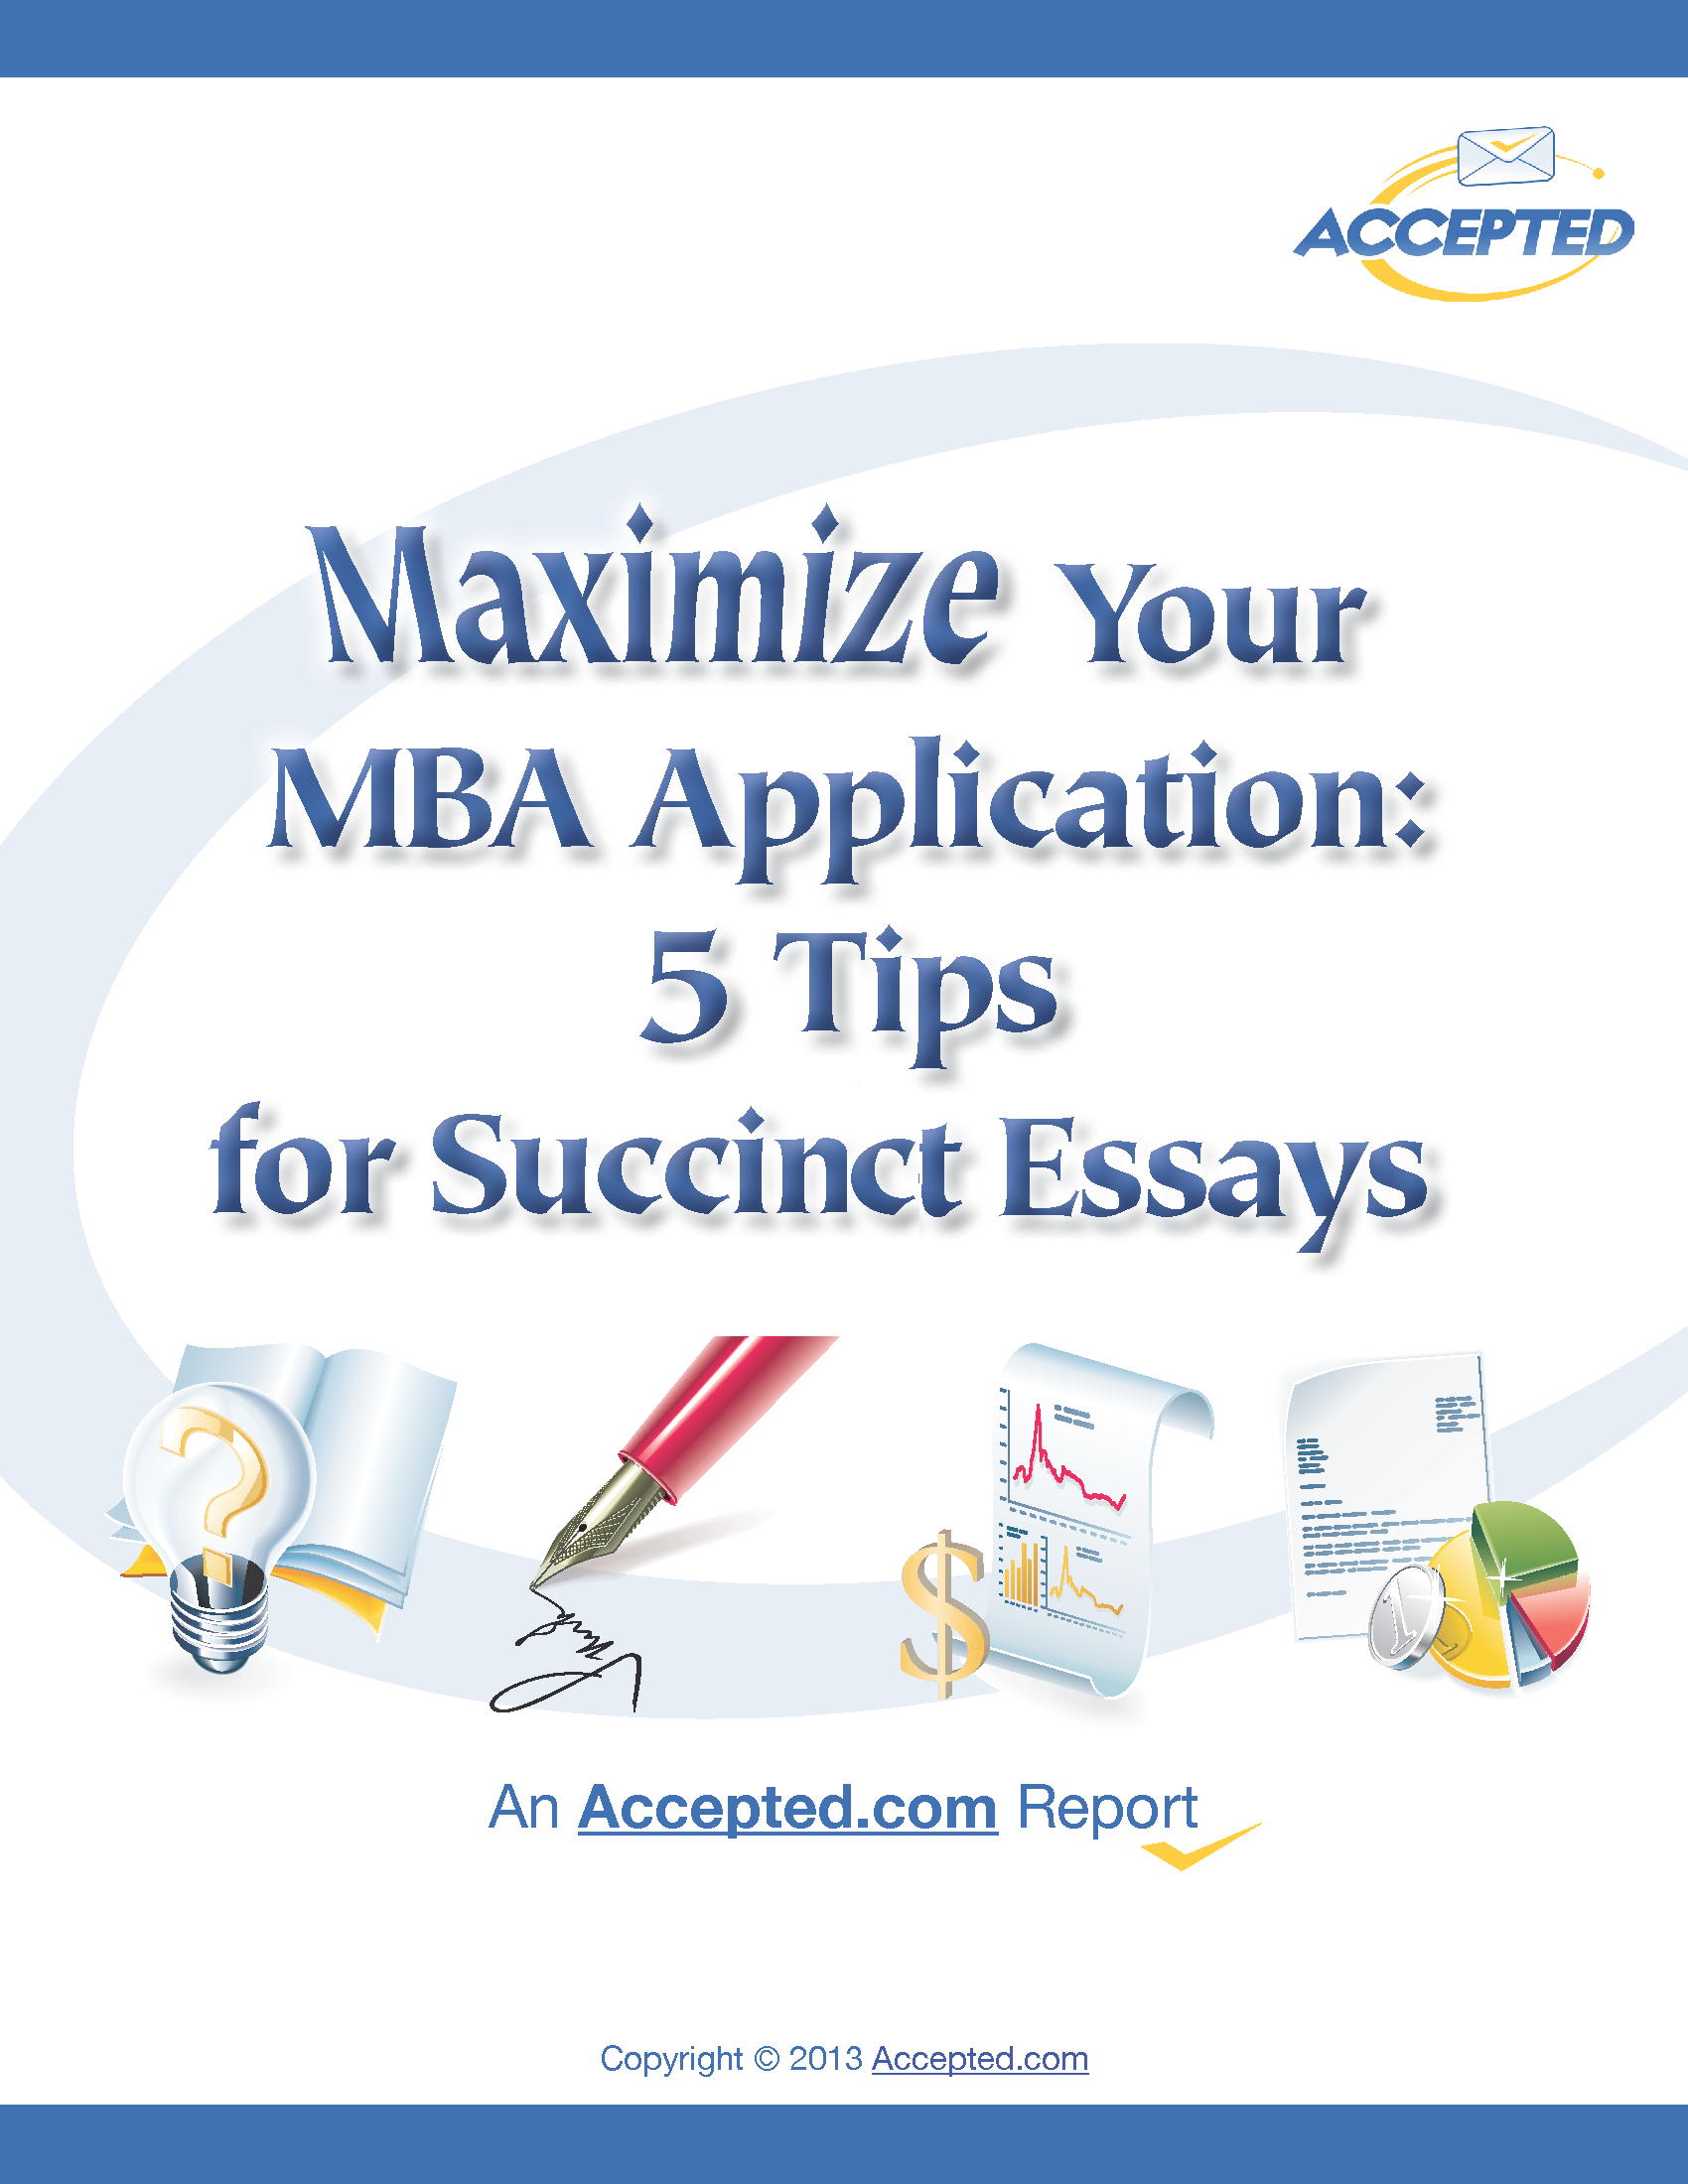 Maximize_Your_MBA.png